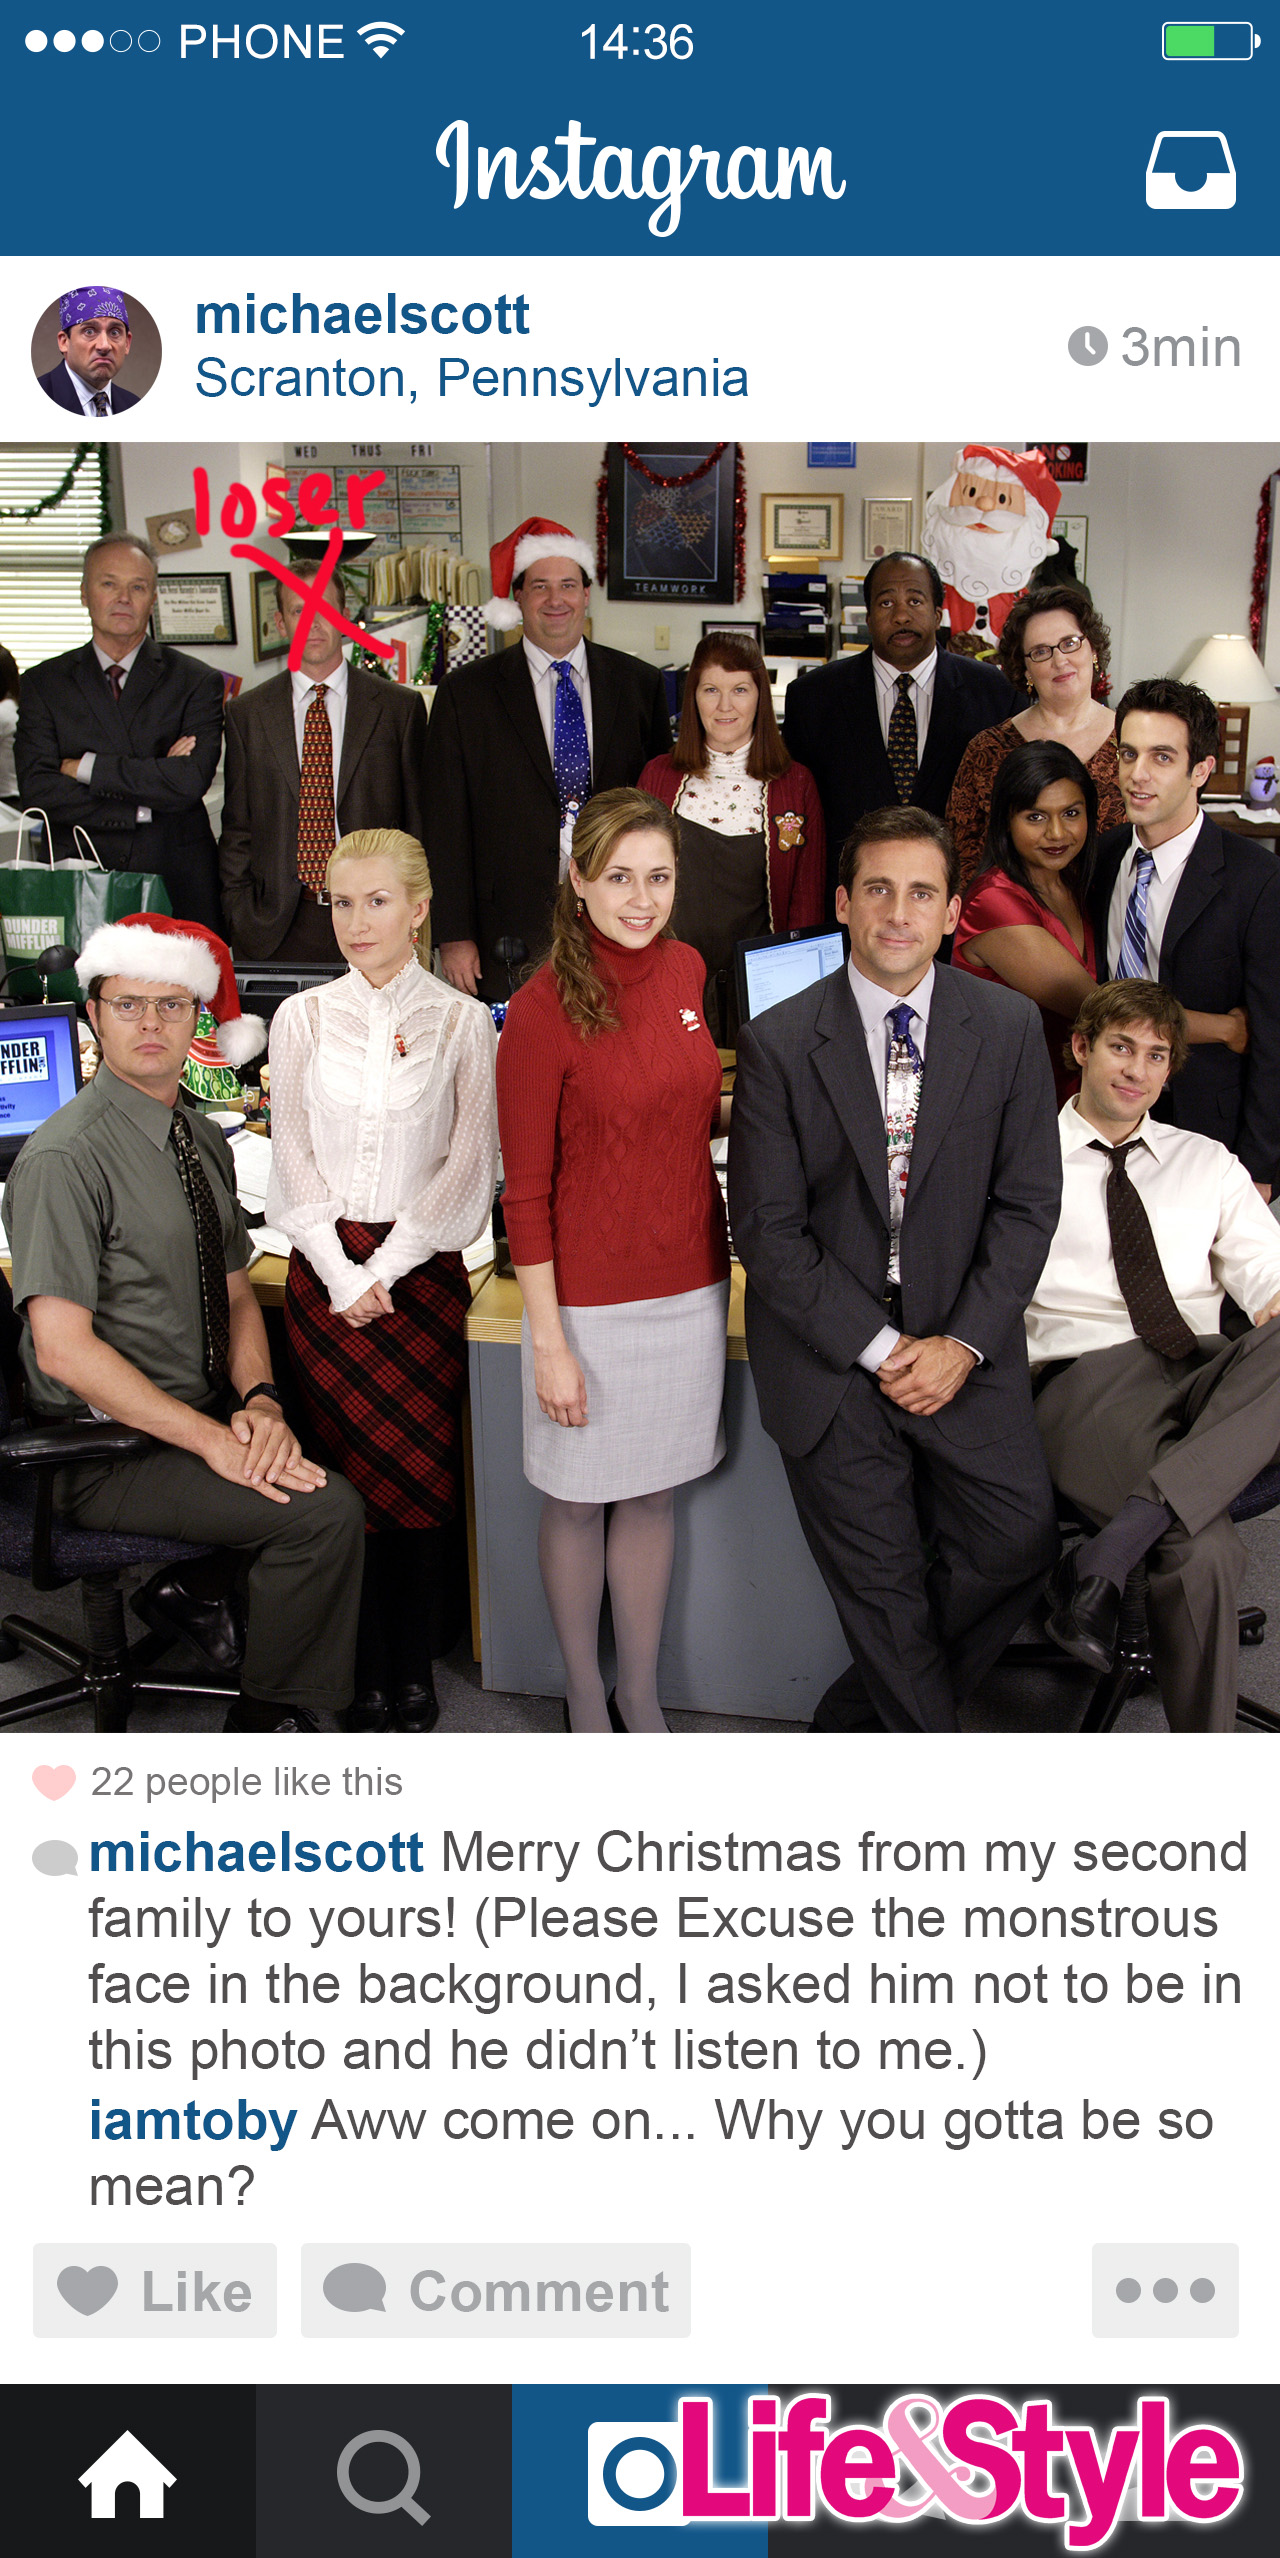 See What Michael Scott From The Office Would Share on Instagram